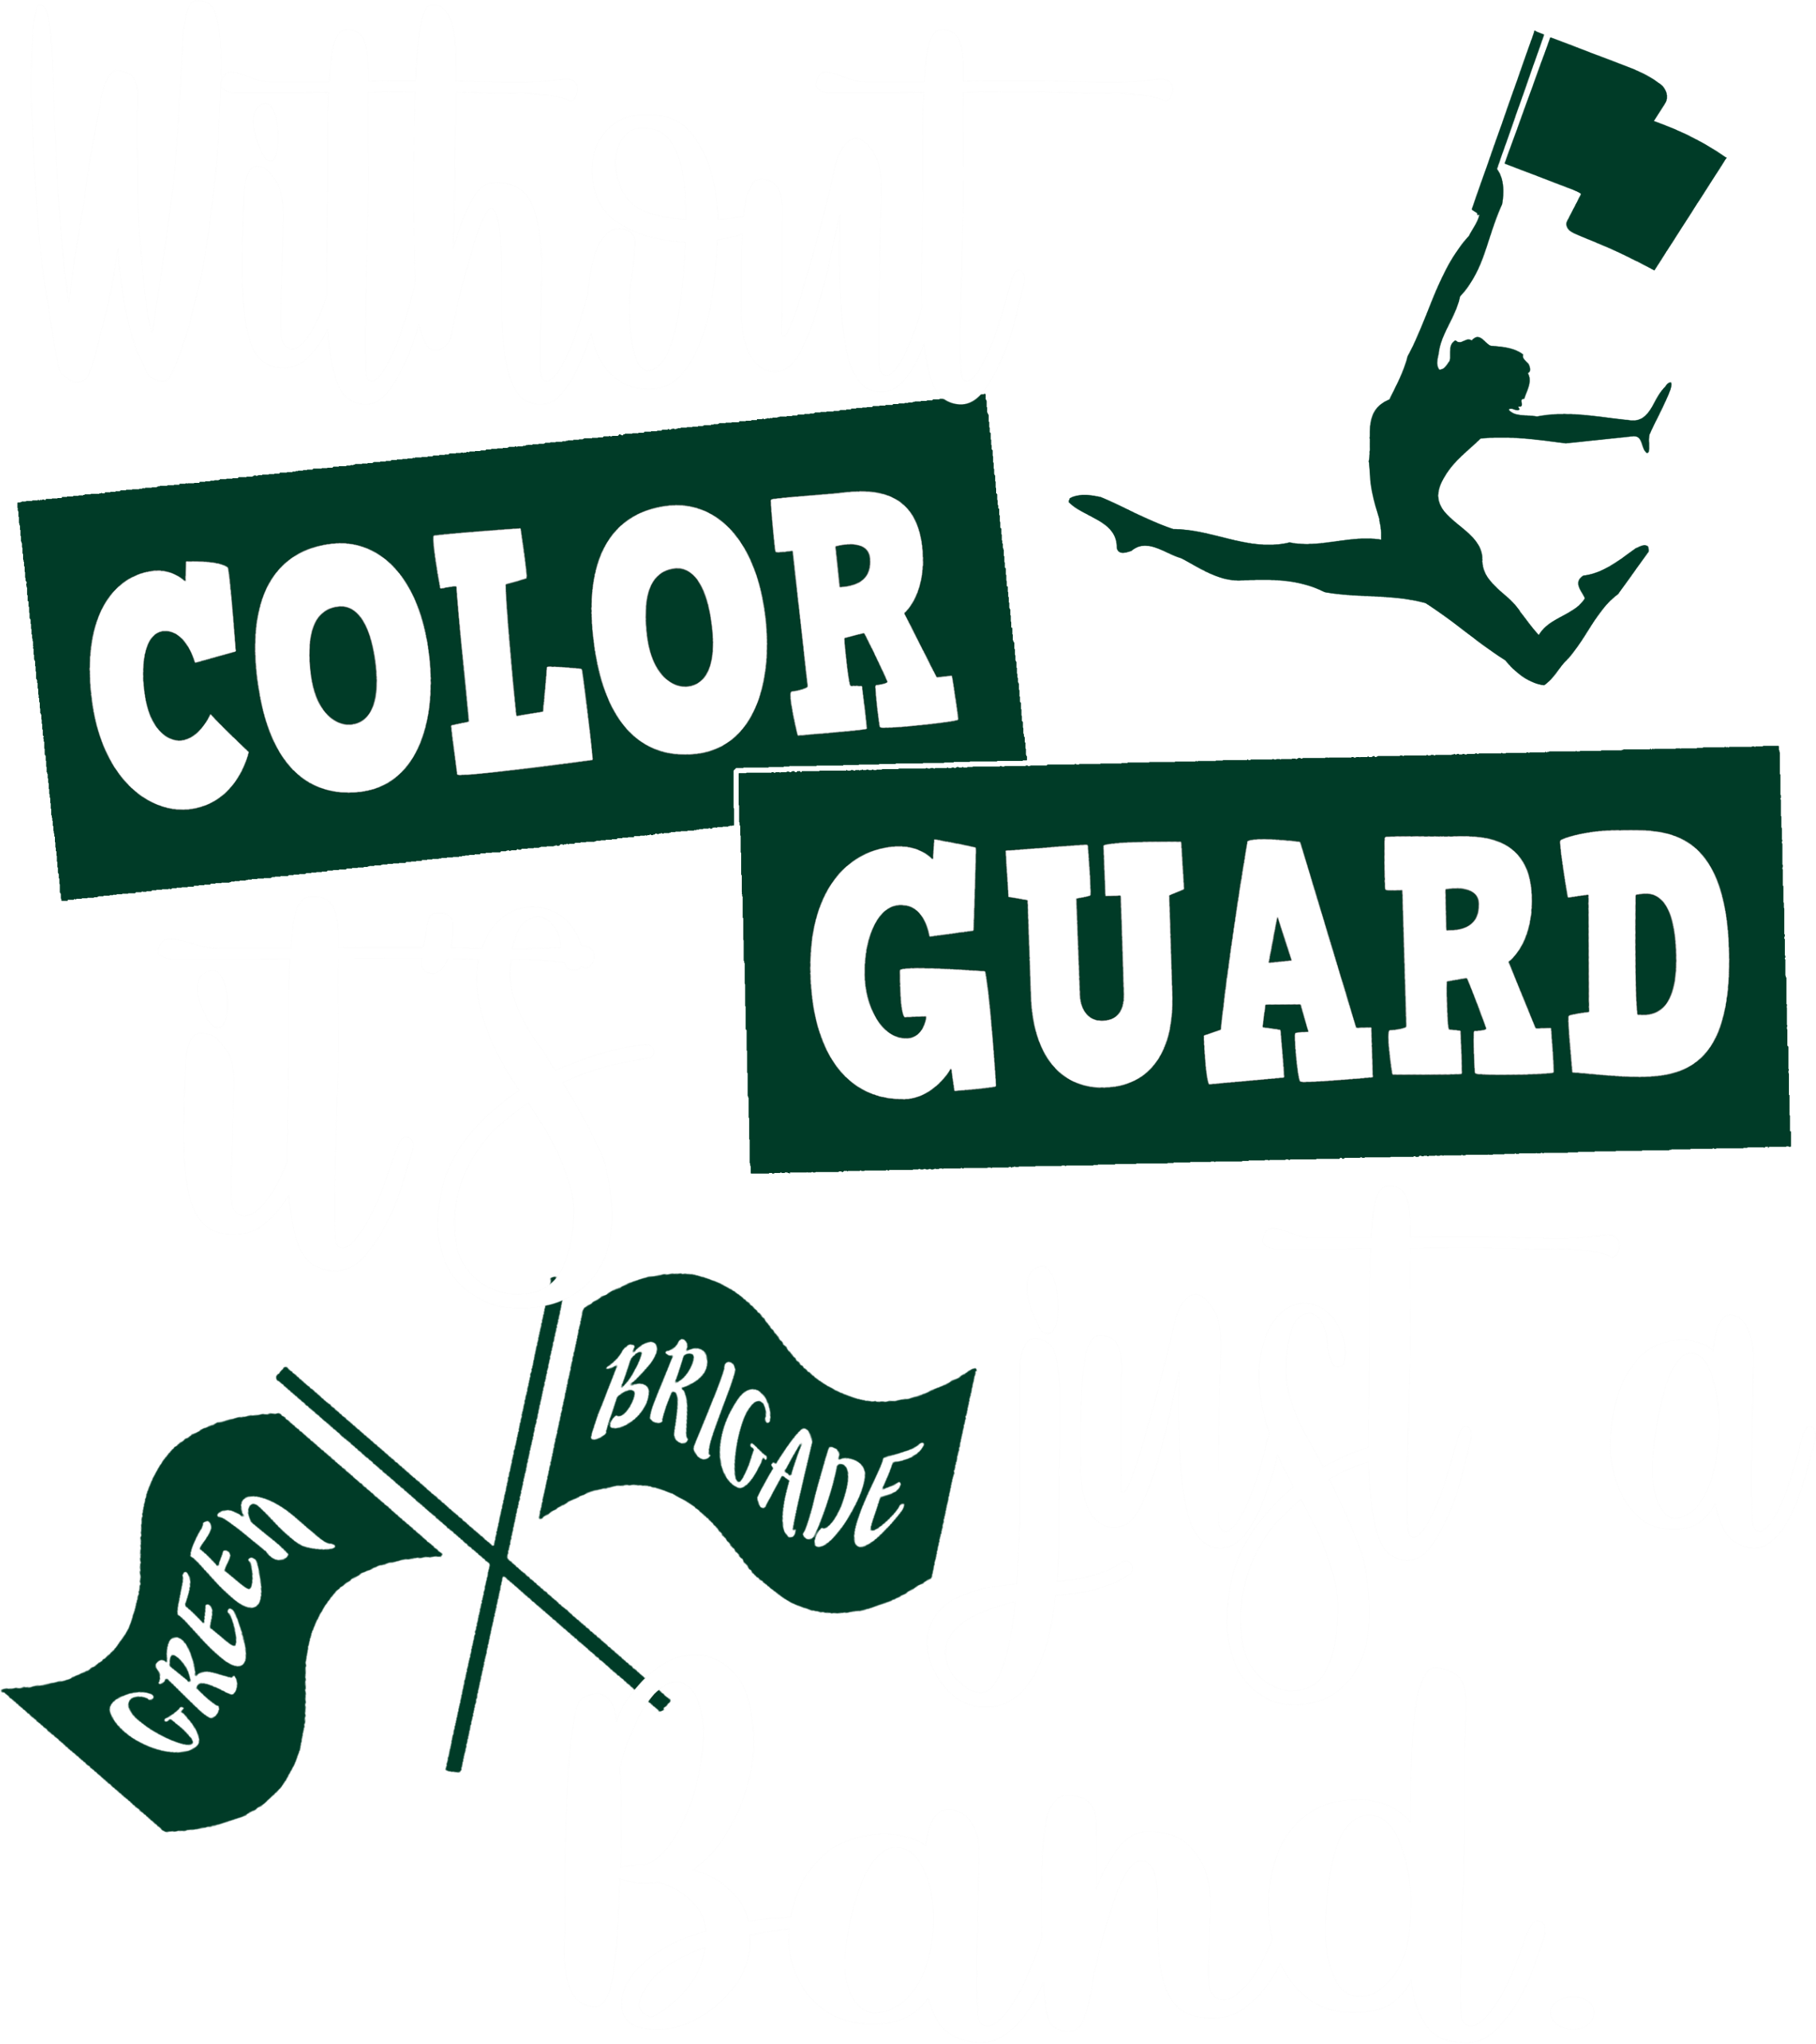 Just A Band Without Color Guard